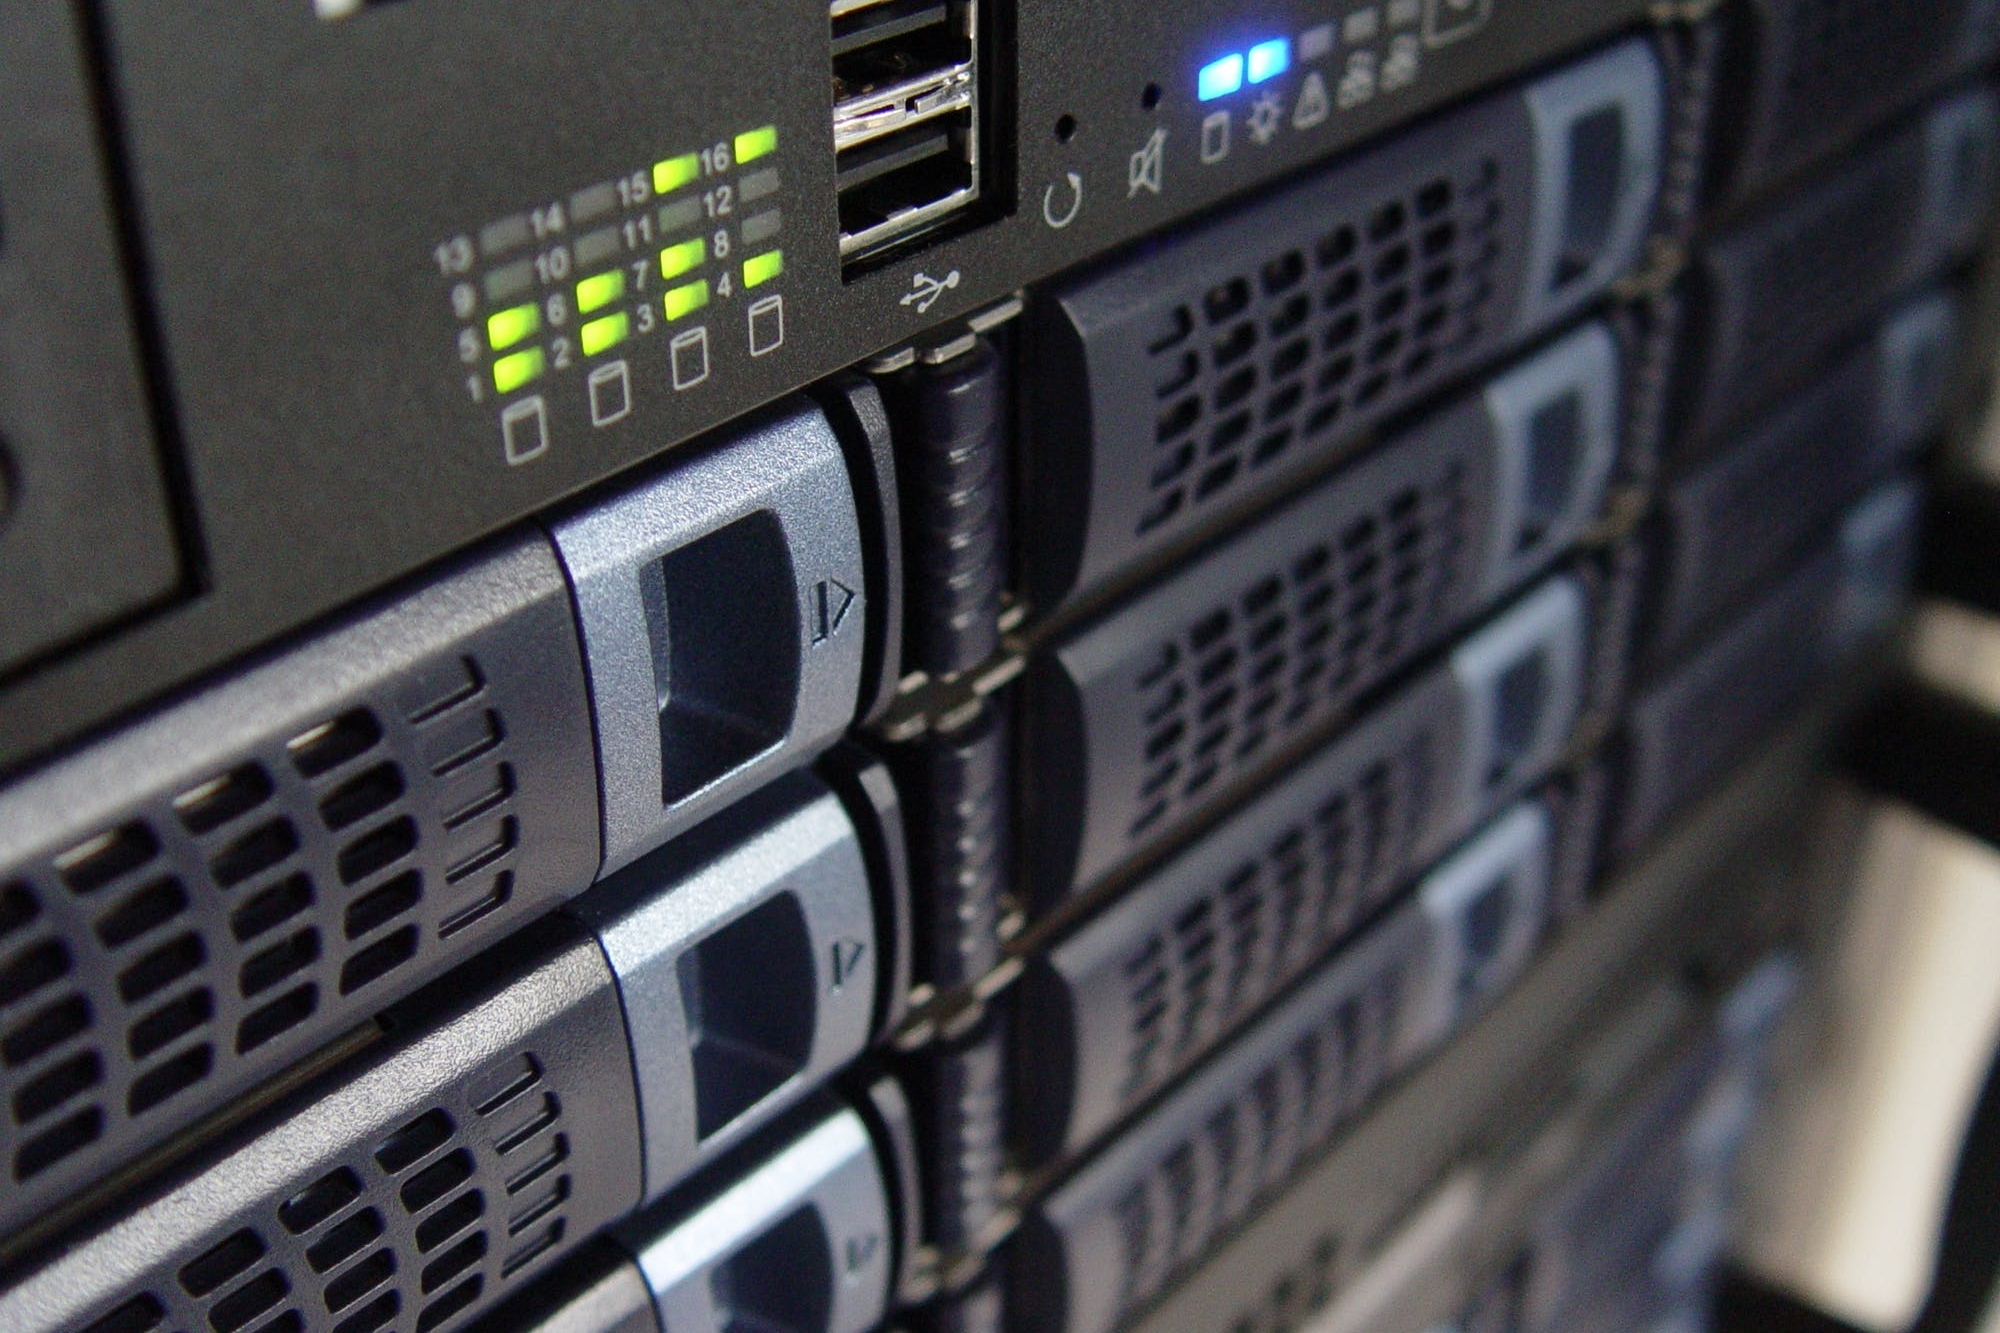 Data Redundancy - In the digital age, backups are critical. An unplanned hardware failure can cost you hours of downtime, on a good day. A variety of backup solutions are available from the user level up to server . Multiple offsite backup systems keep your data up to date and in a safe location, no matter what.